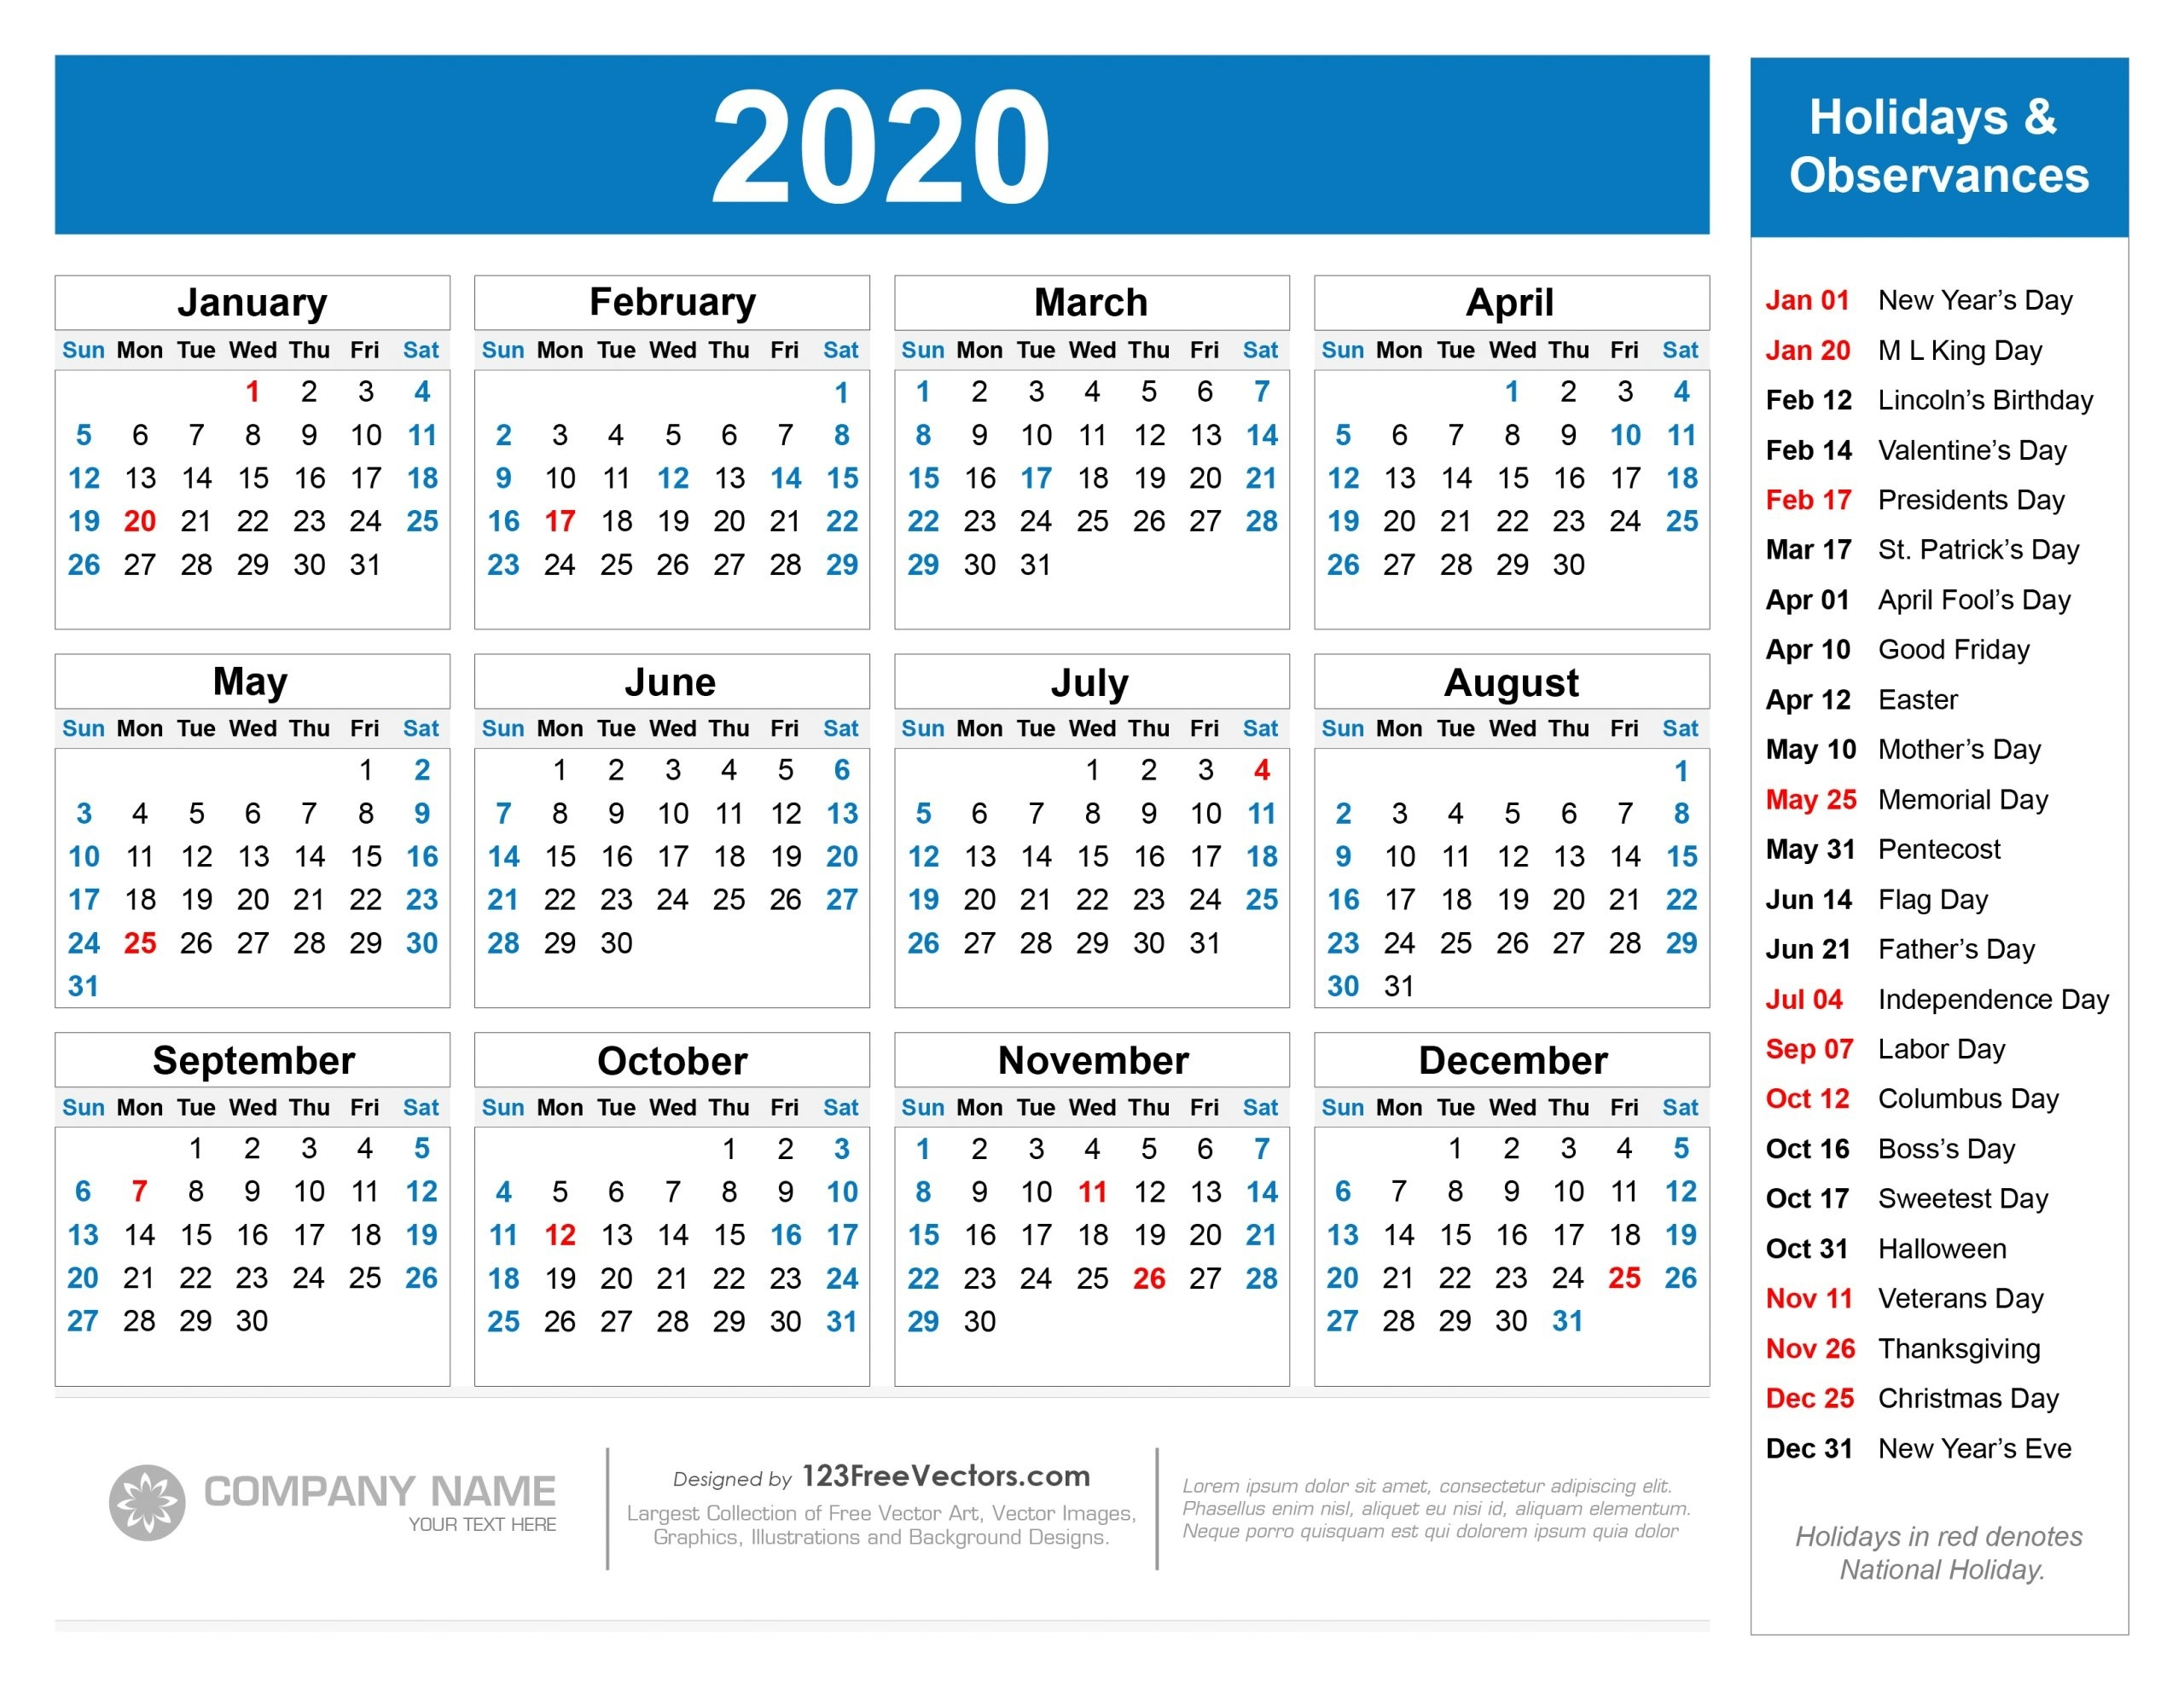 Collect 2020 Calendar With Federal Holidays | Calendar